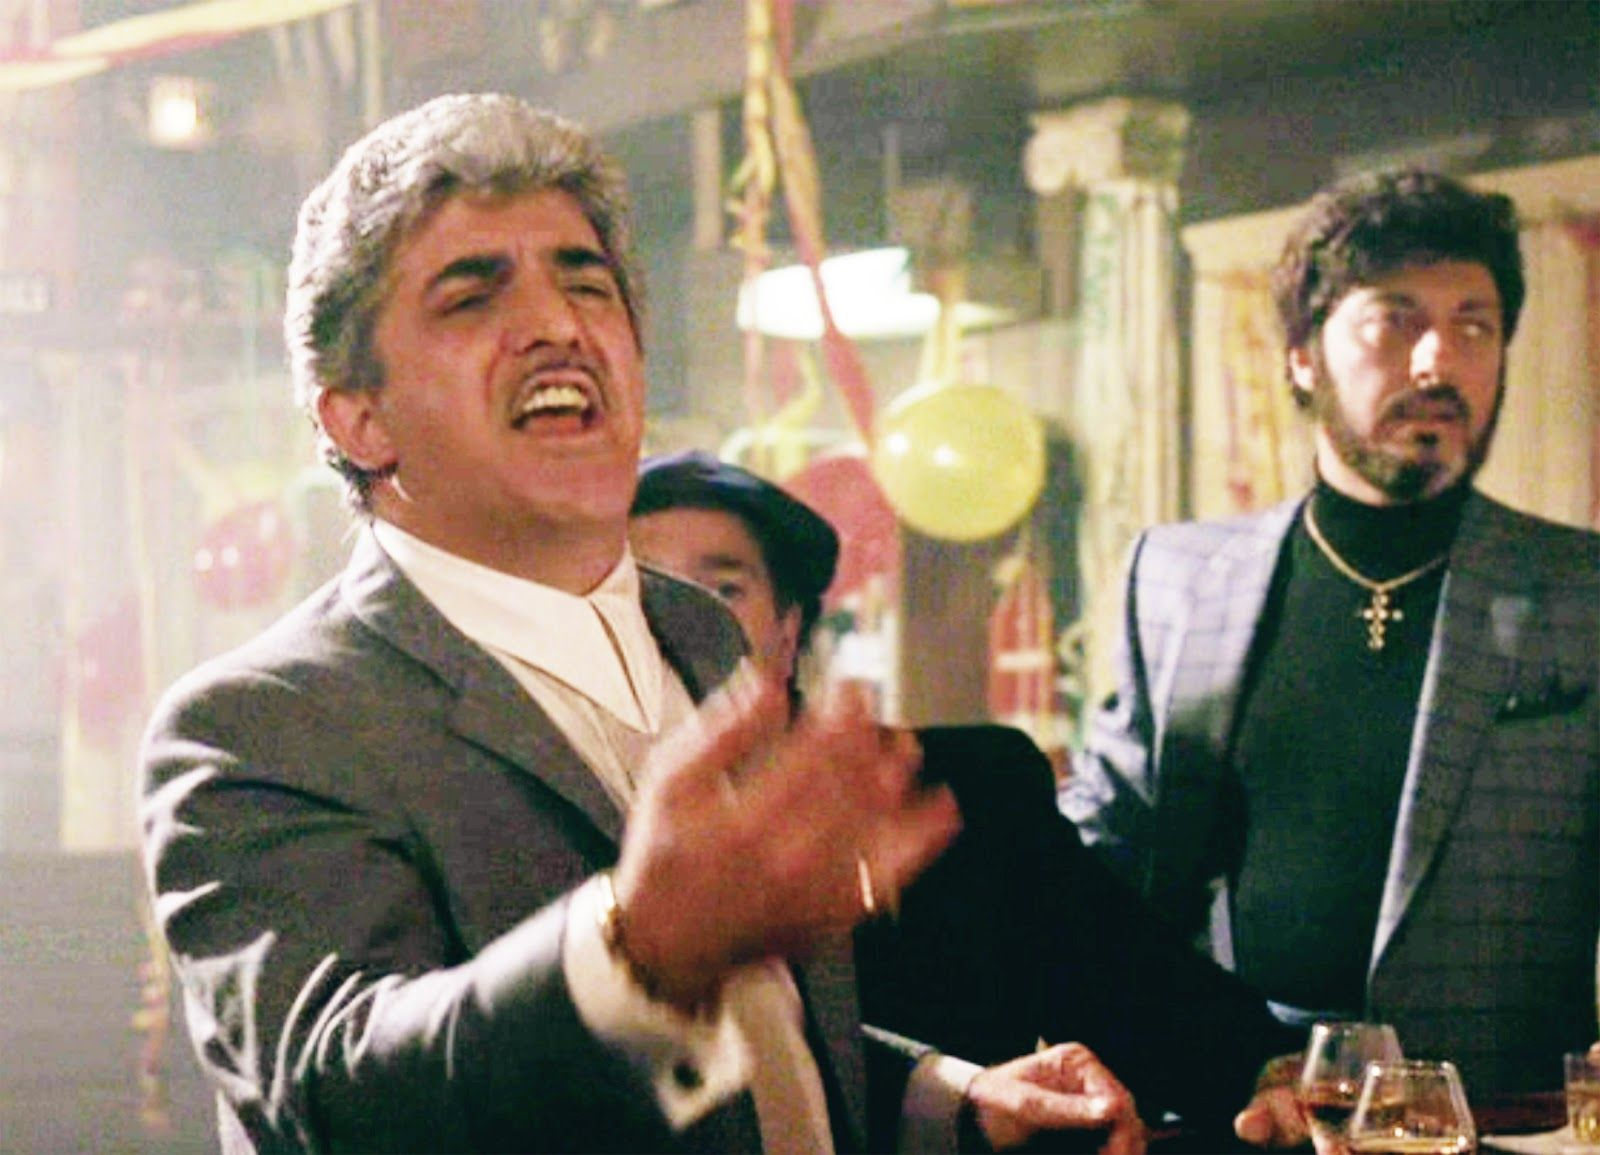 frank vincent of goodfellas fame was the ultimate